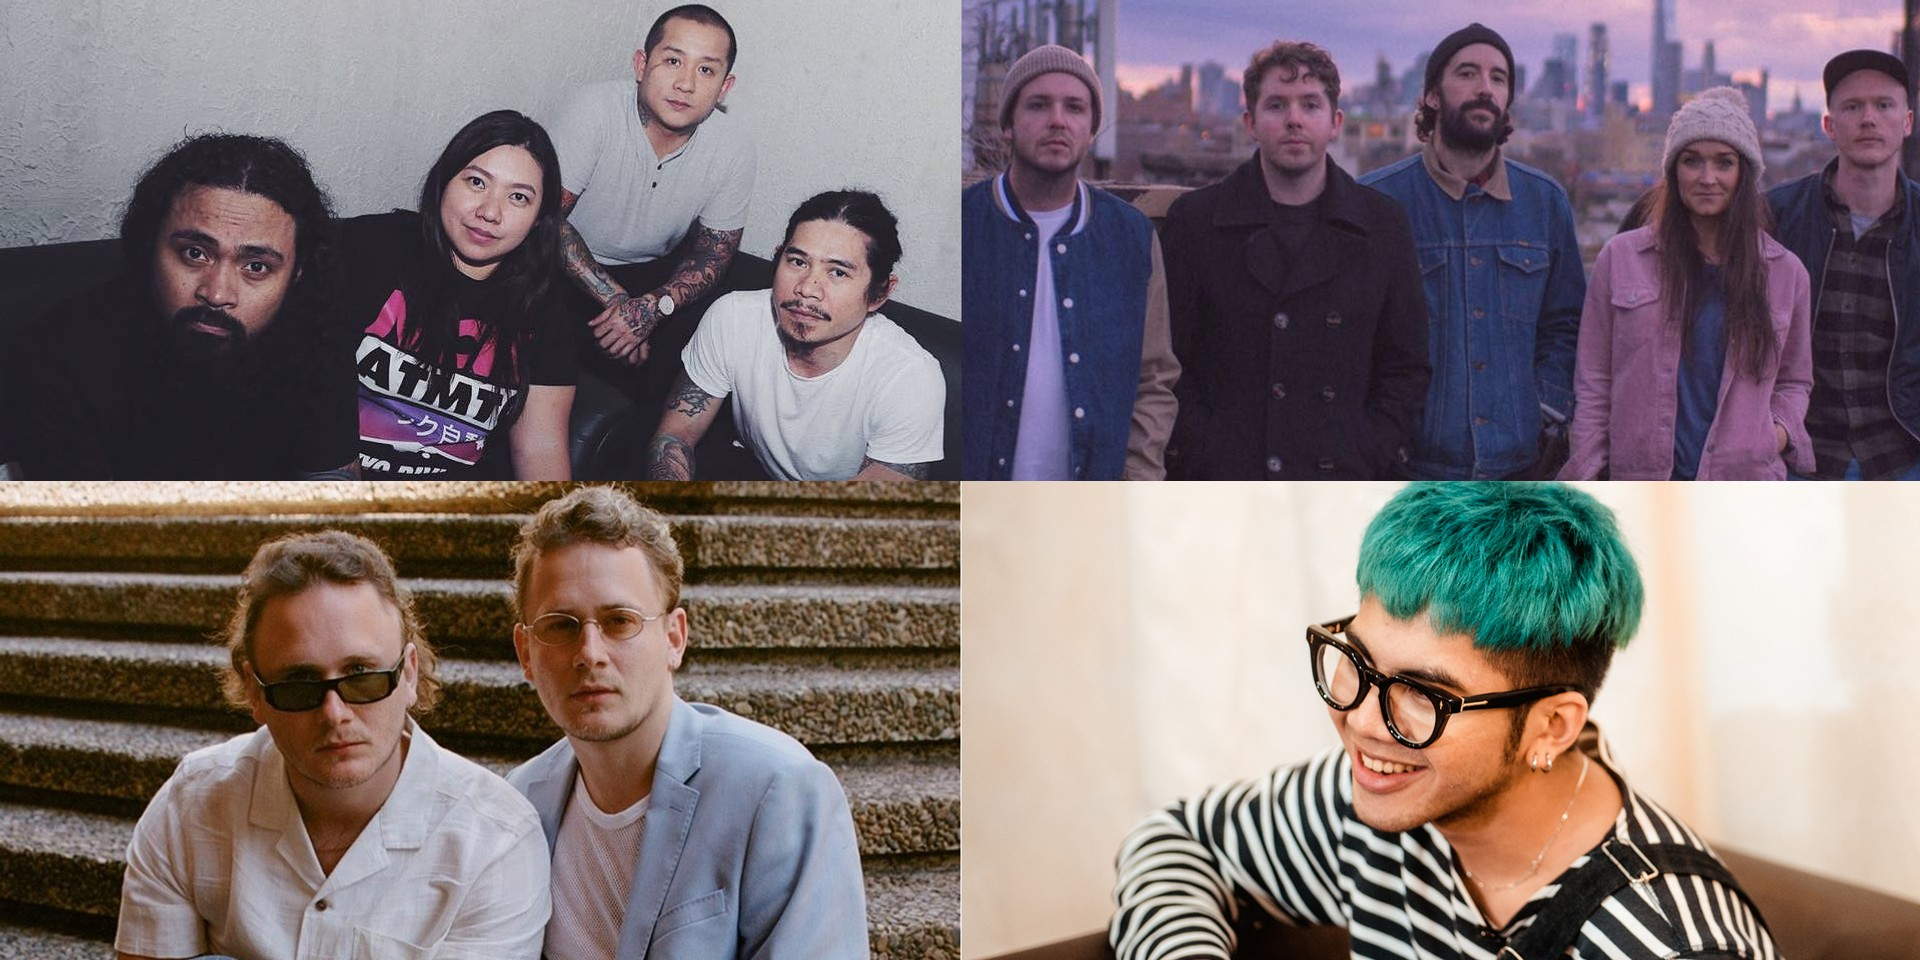 Wanderland 2020 to push through with No Rome, Paper Kites, Urbandub, Cosmo's Midnight, and more